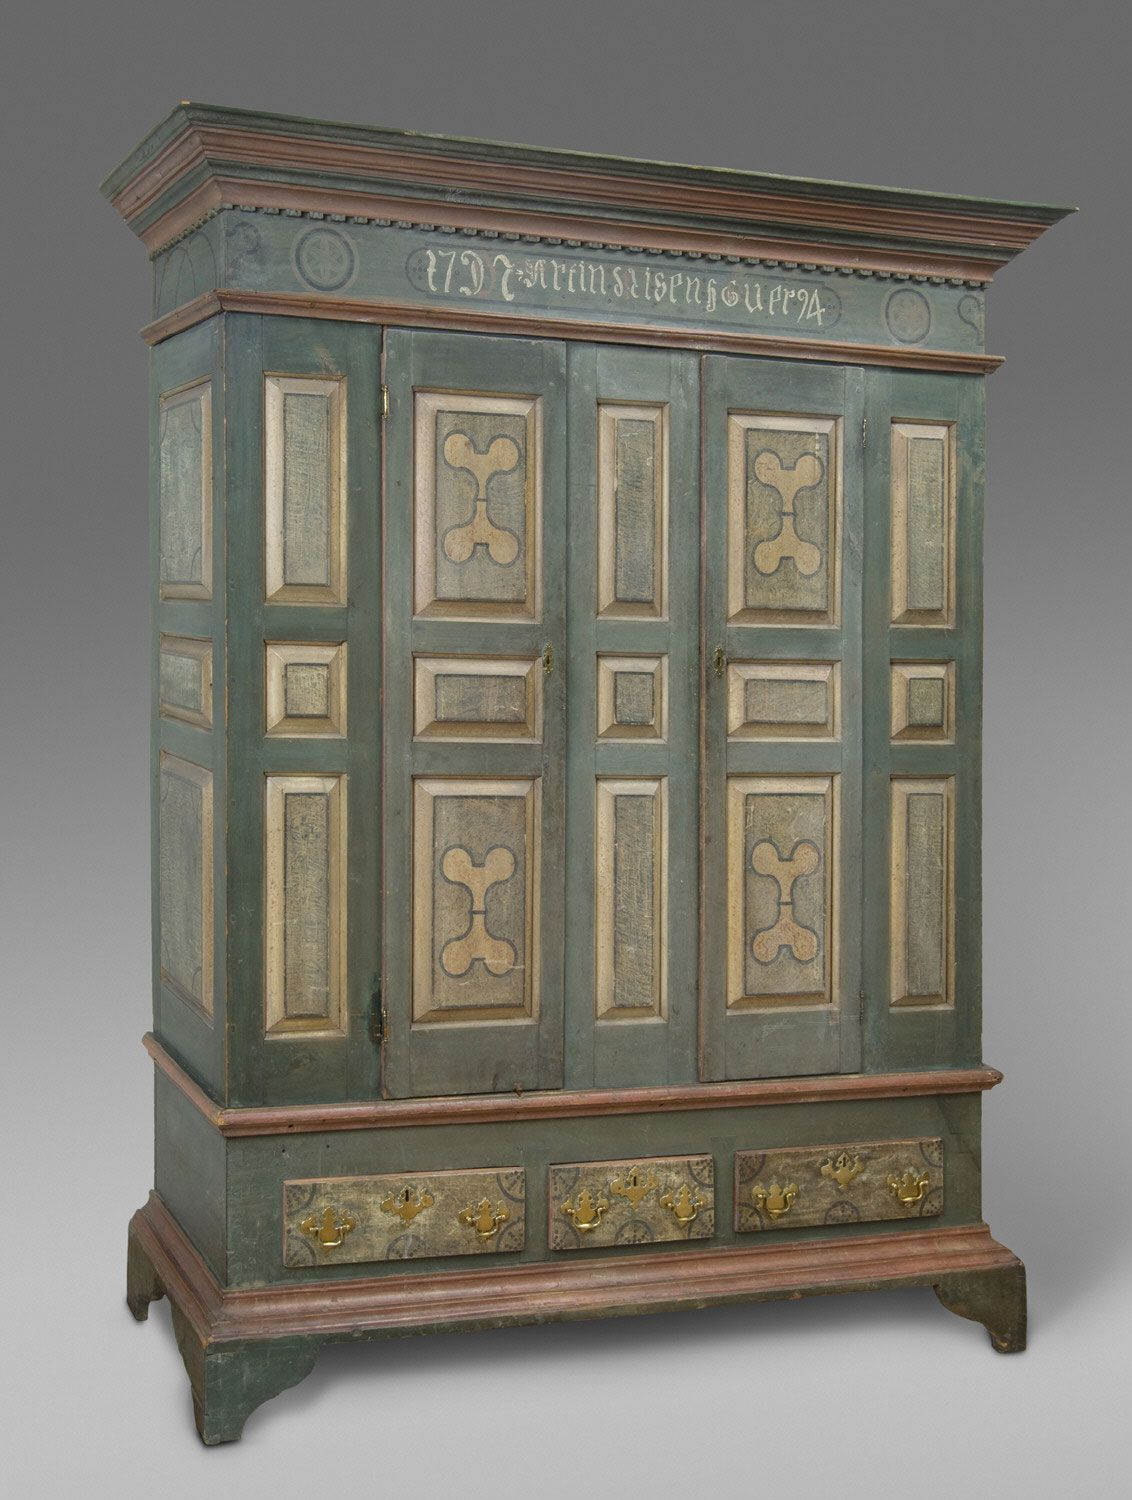 Wardrobe (Schrank) Artist/maker unknown, American, Pennsylvania German 1794 - Wardrobe (Schrank) Artist/maker Unknown, American, Pennsylvania